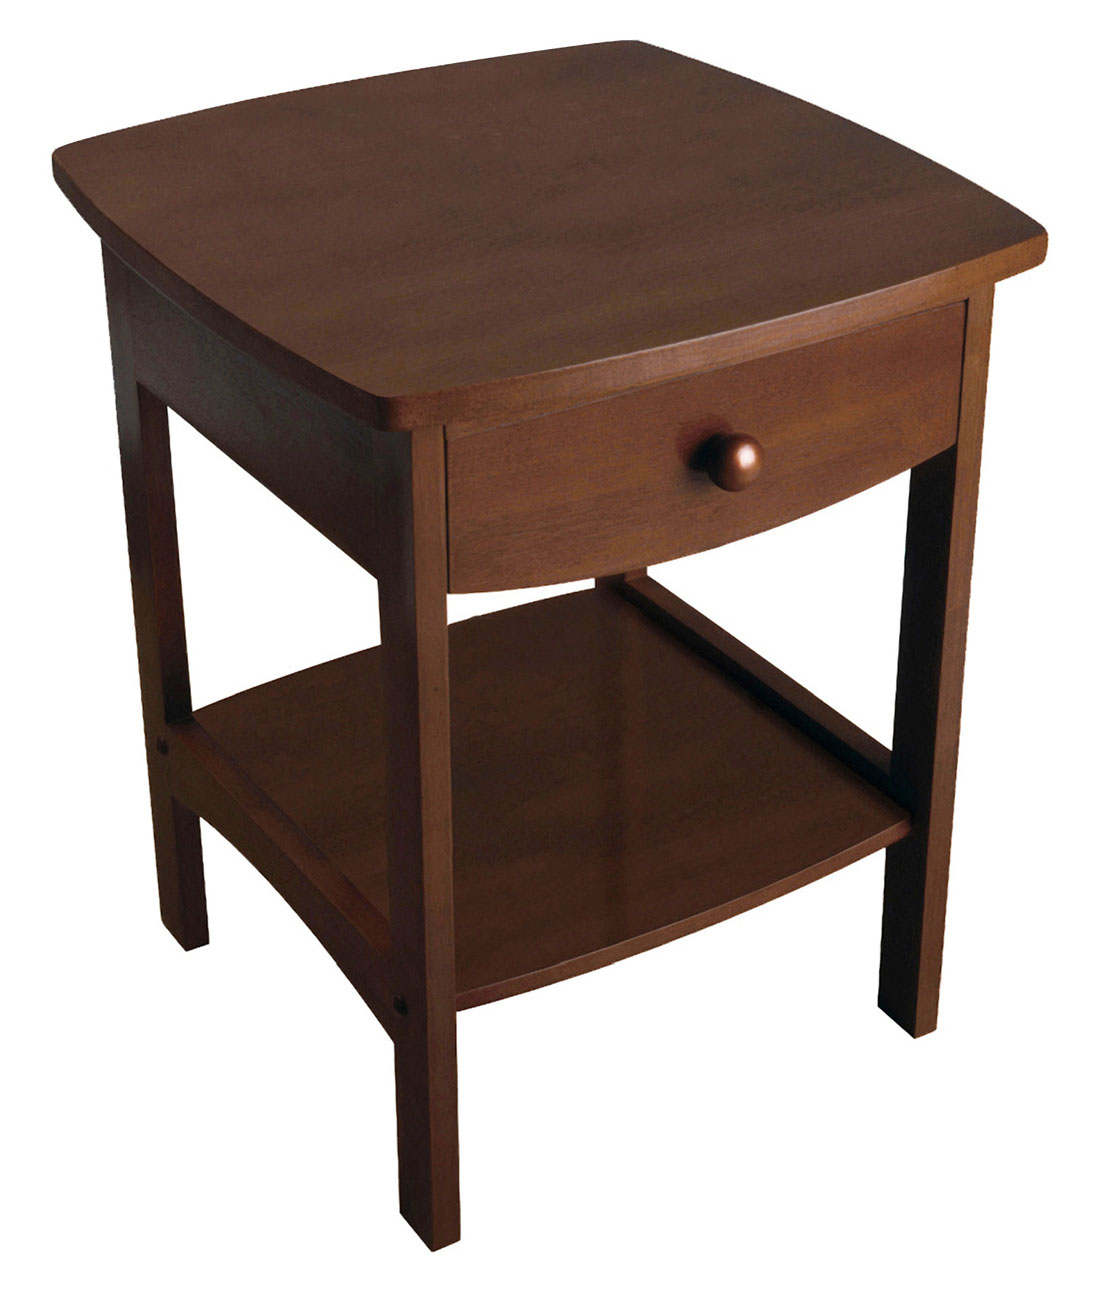 winsome wood claire accent table anitque walnut finish household squamish with drawer espresso corner mirrored lamp battery powered floor lights bbq grill side waterproof